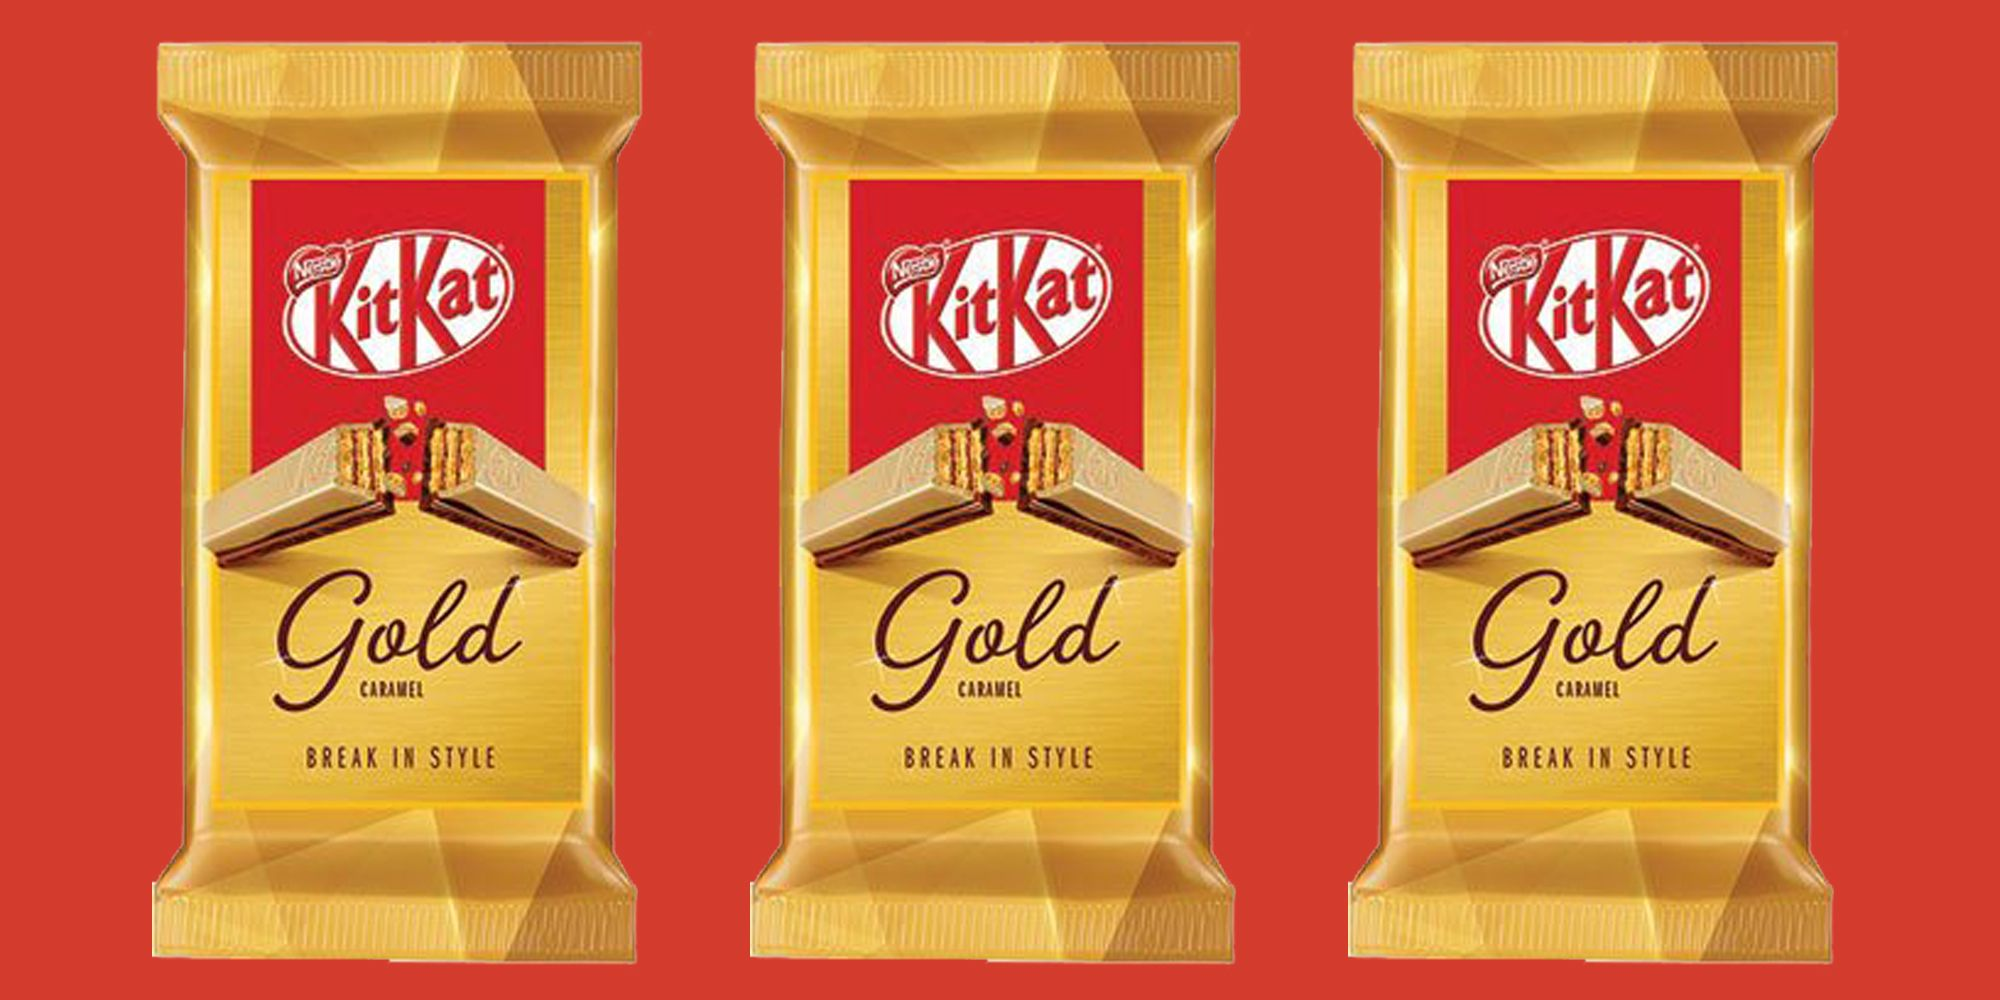 KitKat Gold Is Launching In The UK Next Month And We Can't Wait